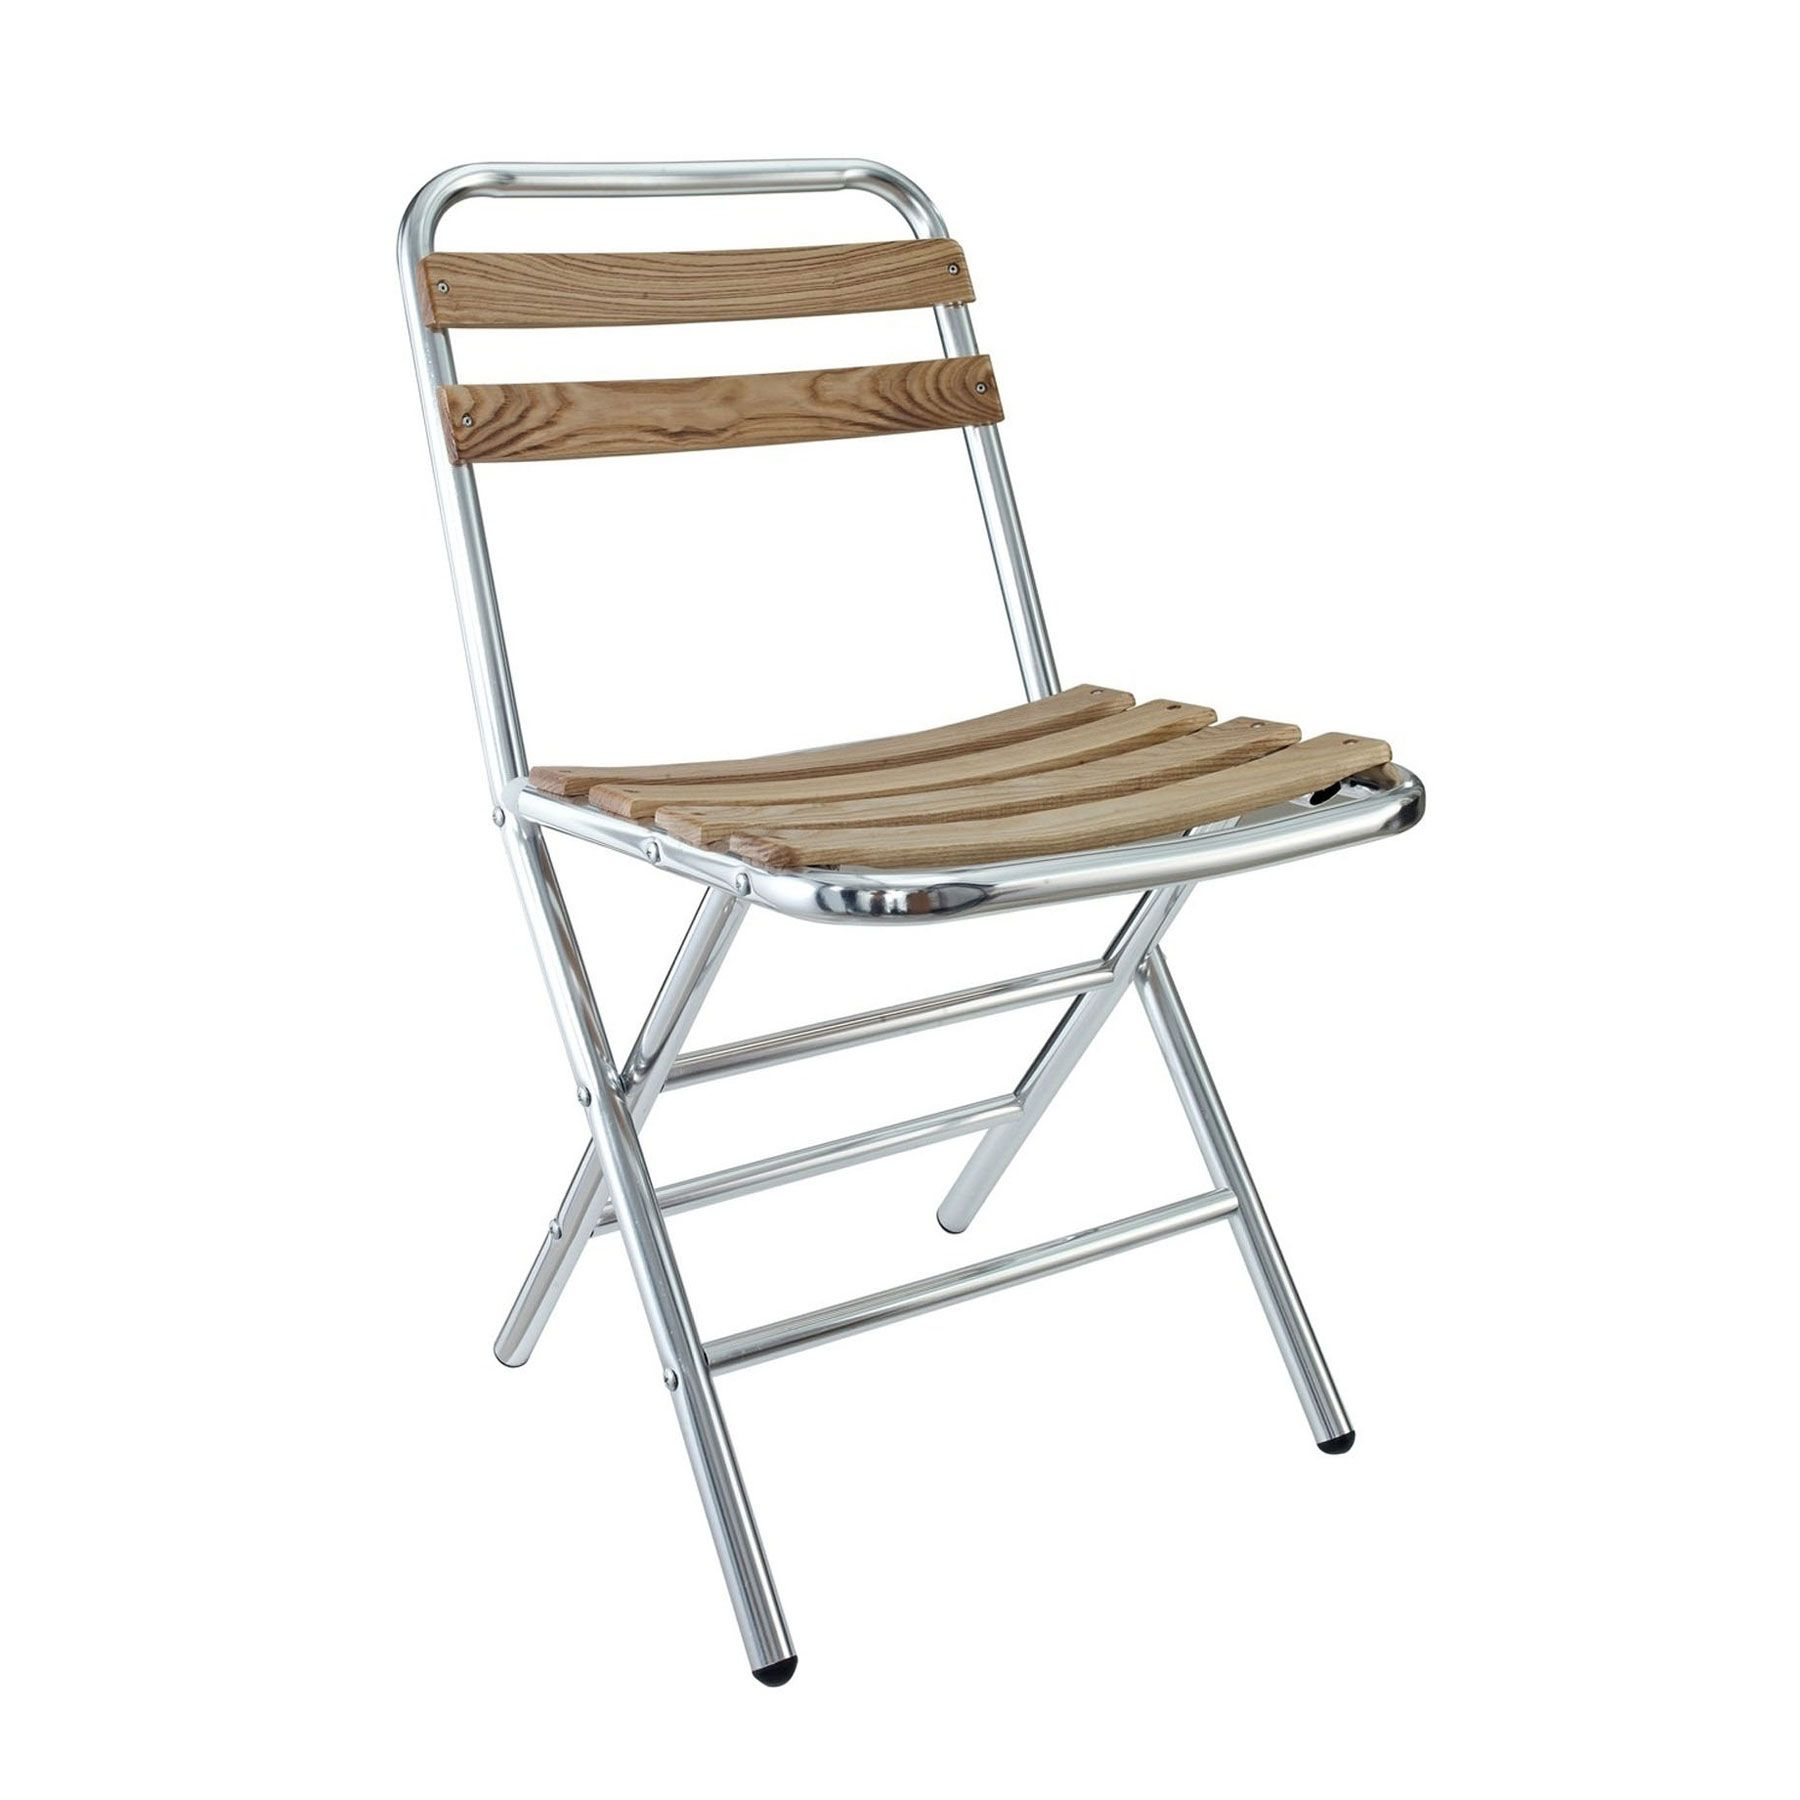 New School Folding Chair Folding Chair Outdoor Folding Chairs Chair